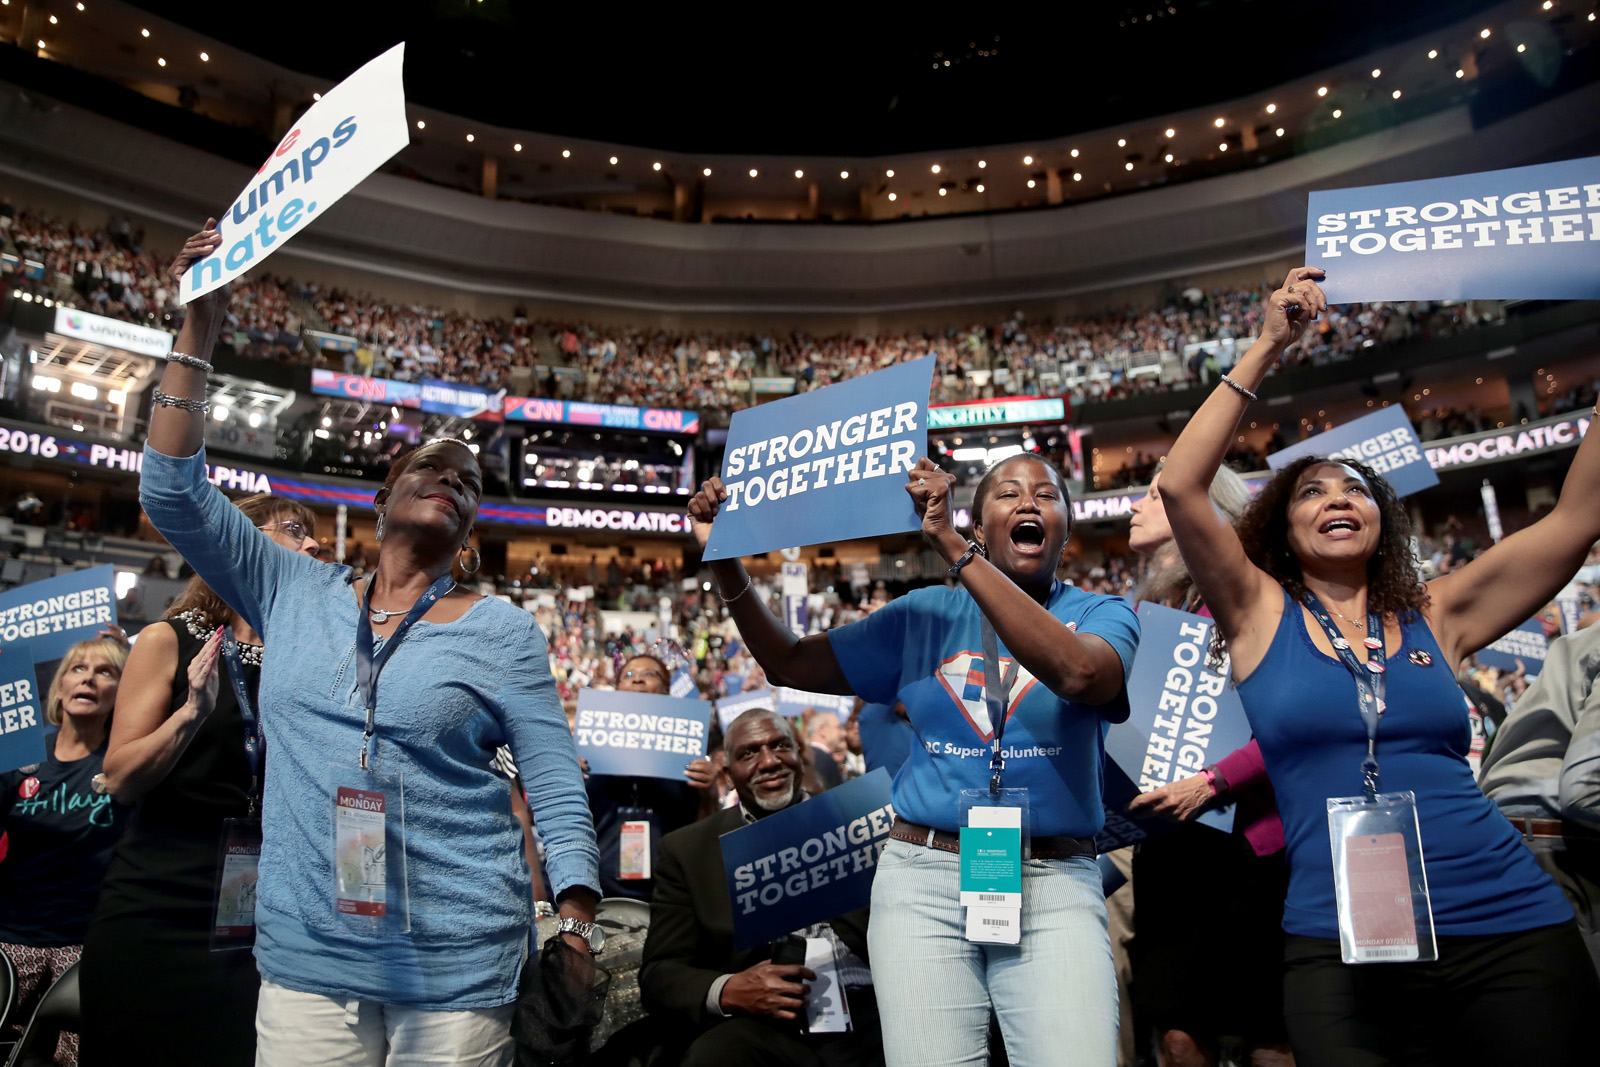 PHILADELPHIA, PA - JULY 25:  Delegates cheer on the first day of the Democratic National Convention at the Wells Fargo Center, July 25, 2016 in Philadelphia, Pennsylvania. An estimated 50,000 people are expected in Philadelphia, including hundreds of protesters and members of the media. The four-day Democratic National Convention kicked off July 25.  (Photo by Drew Angerer/Getty Images)